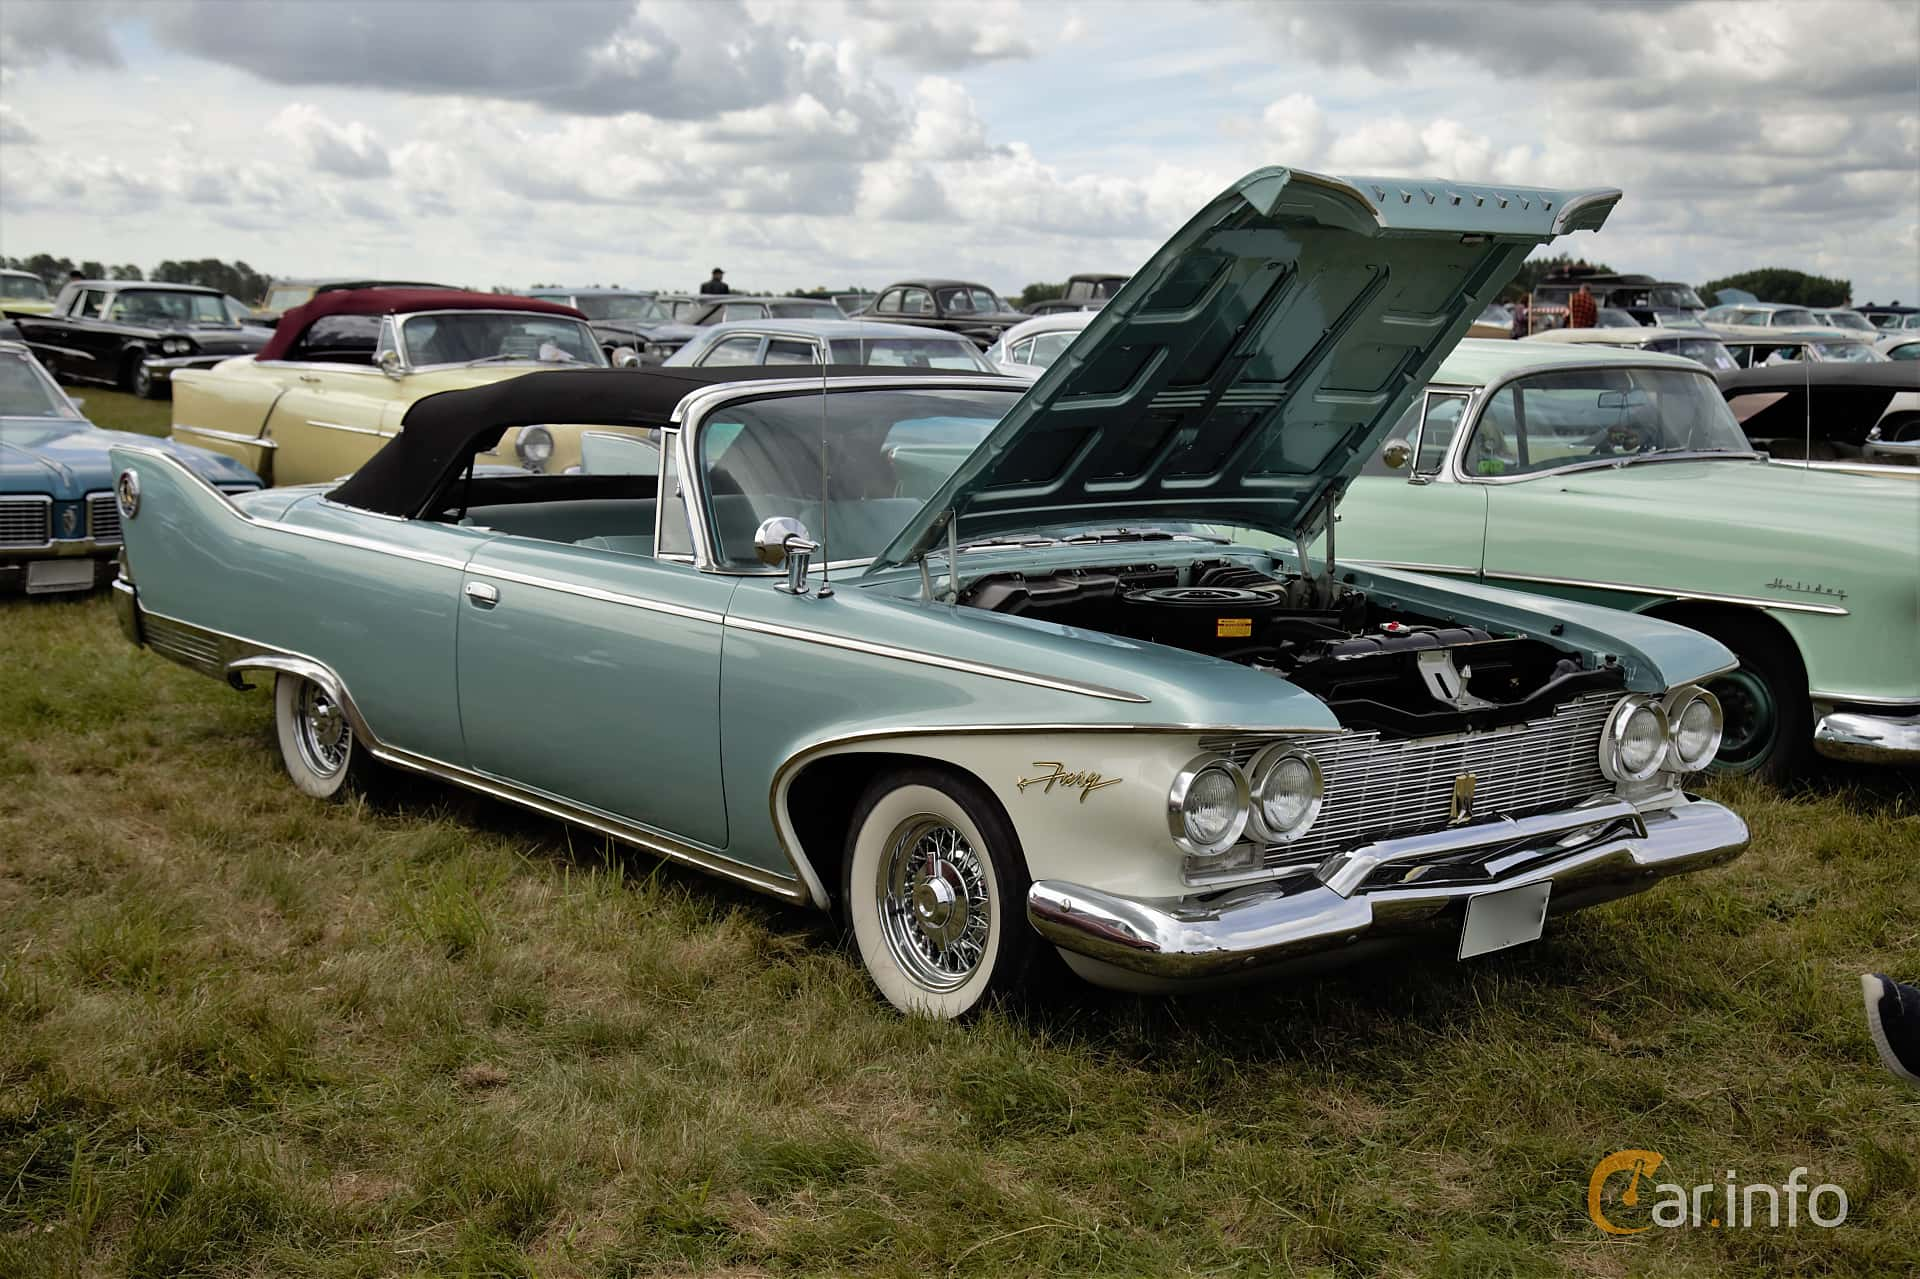 1 Images Of Plymouth Fury Convertible 59 V8 Powerflite 1960 By Espee Front Side At Power Big Meet